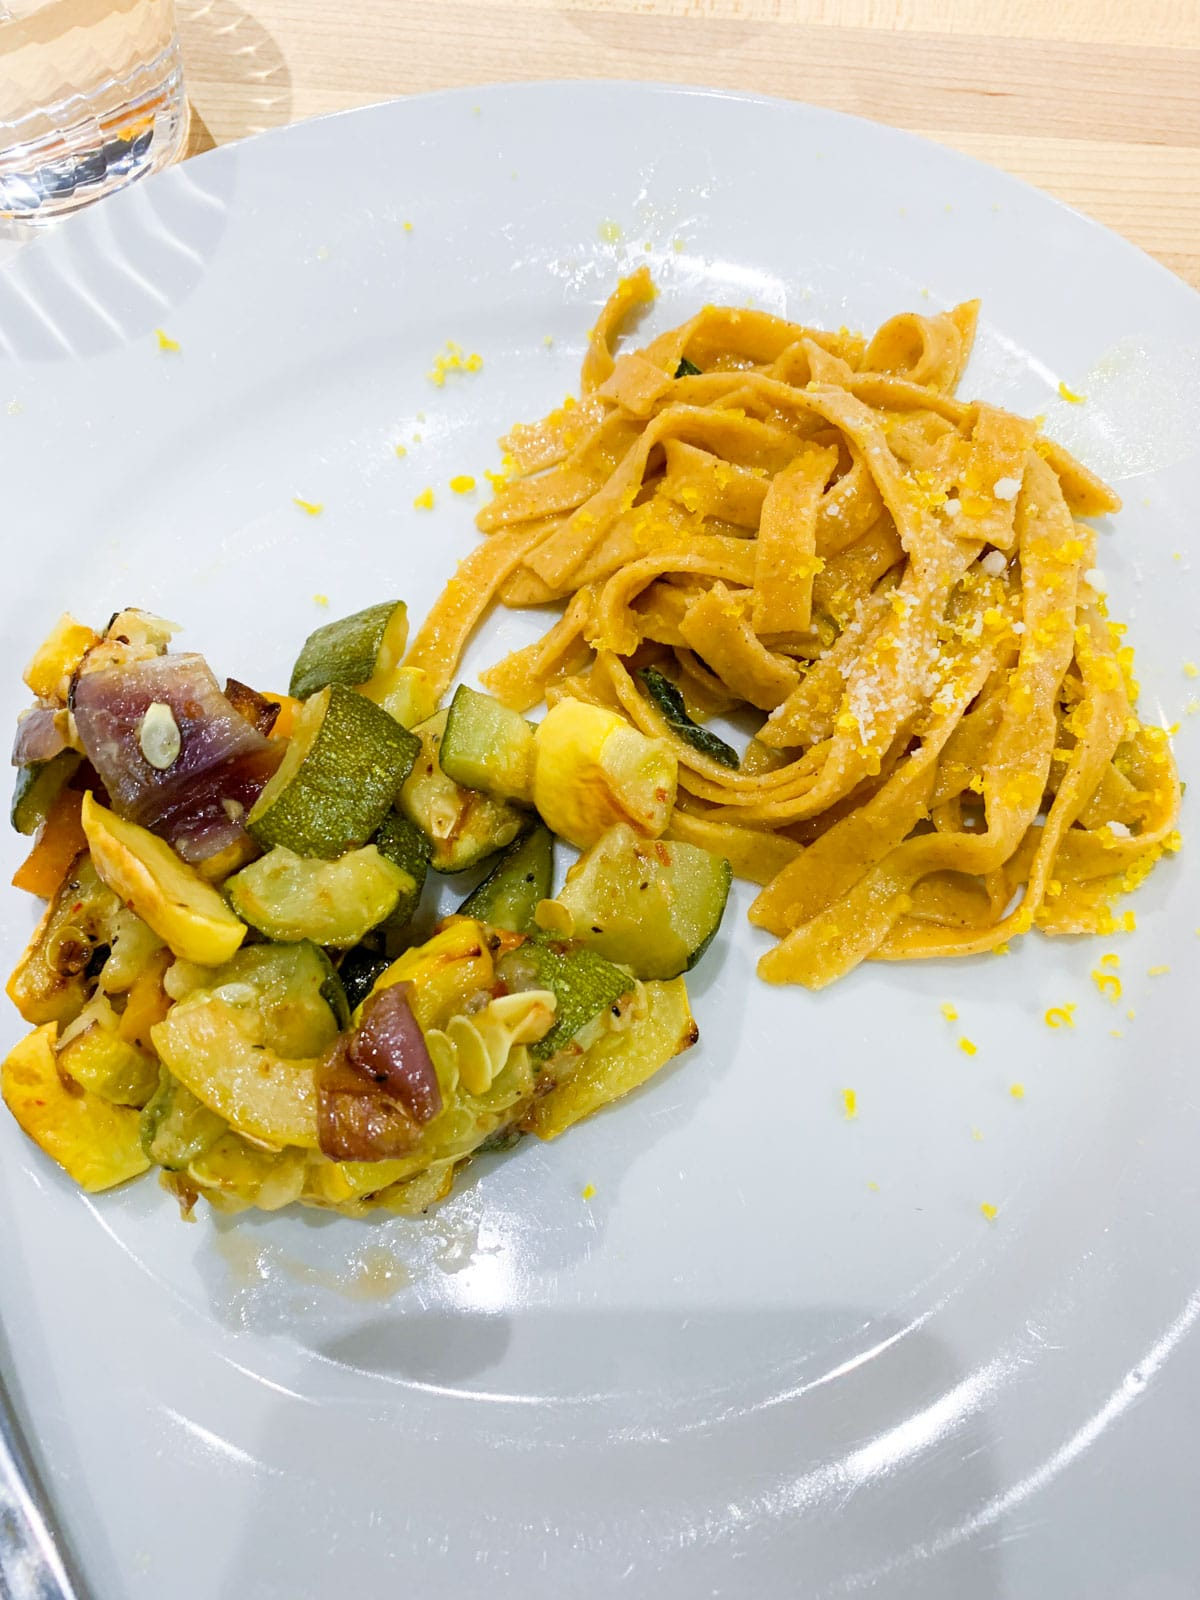 FNCE 2019 - egg nutrition center lunch =- pasta